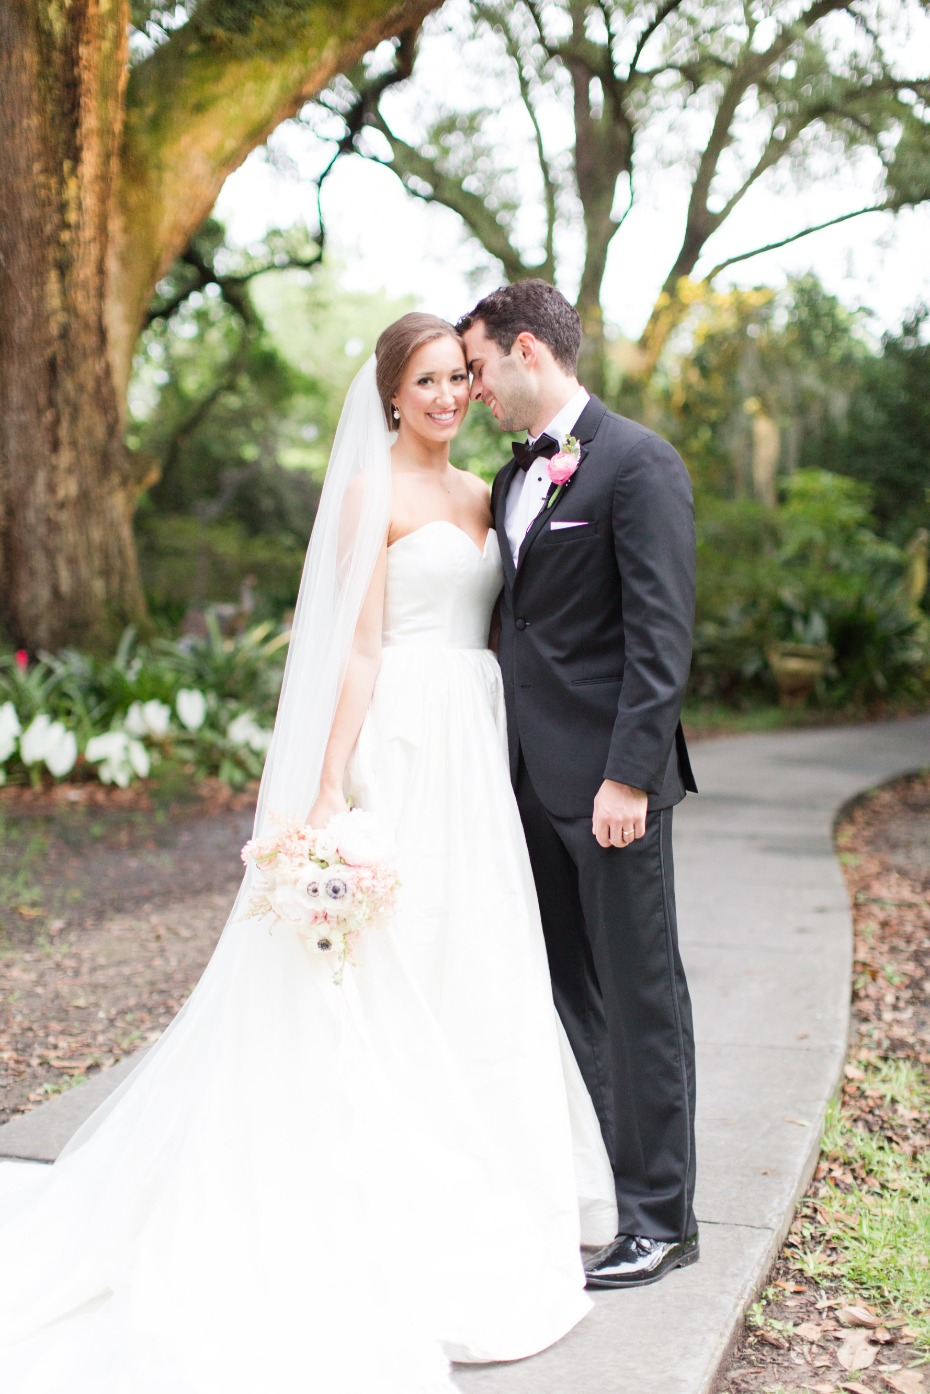 Bridgette and Austin's New Orleans wedding